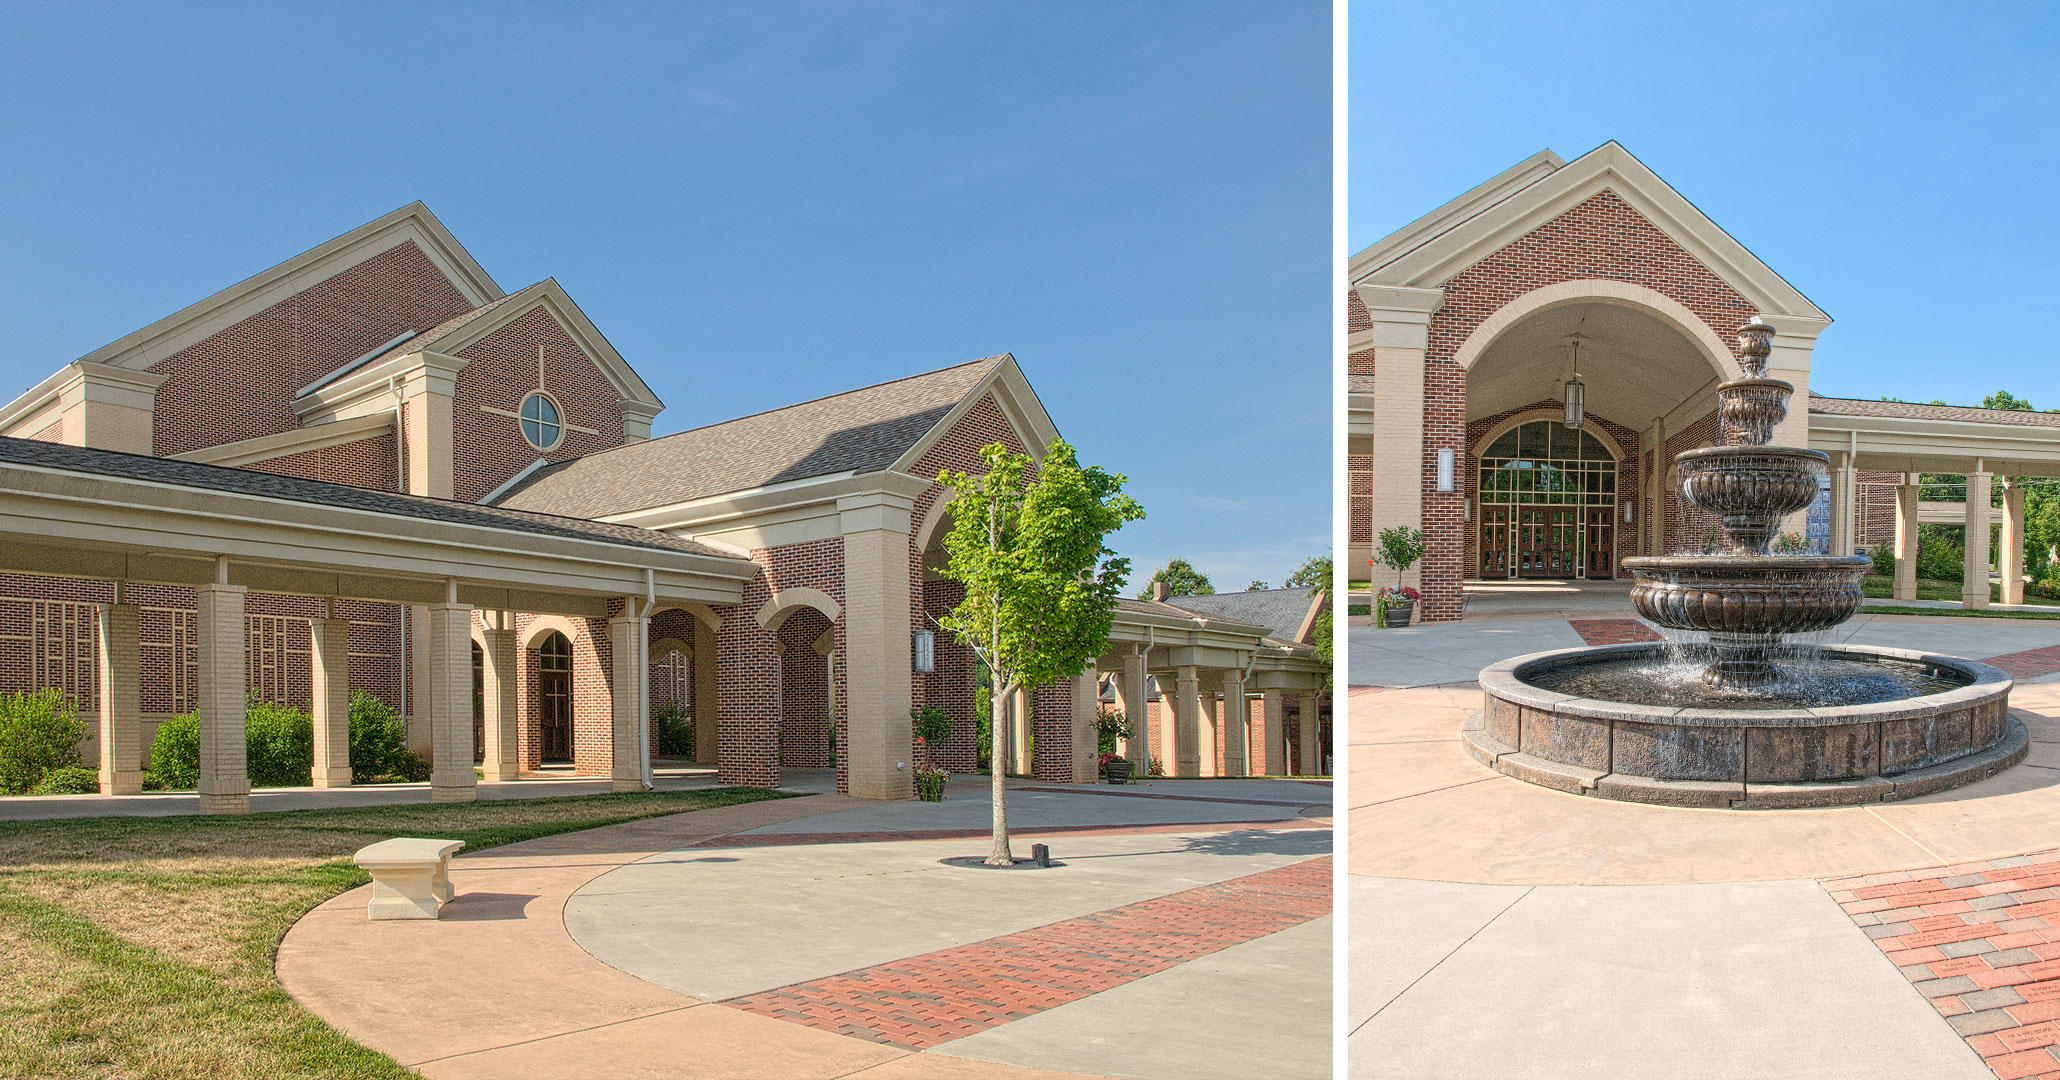 Boudreaux architects worked with St. Mark Catholic Church to design a new church for parishers.